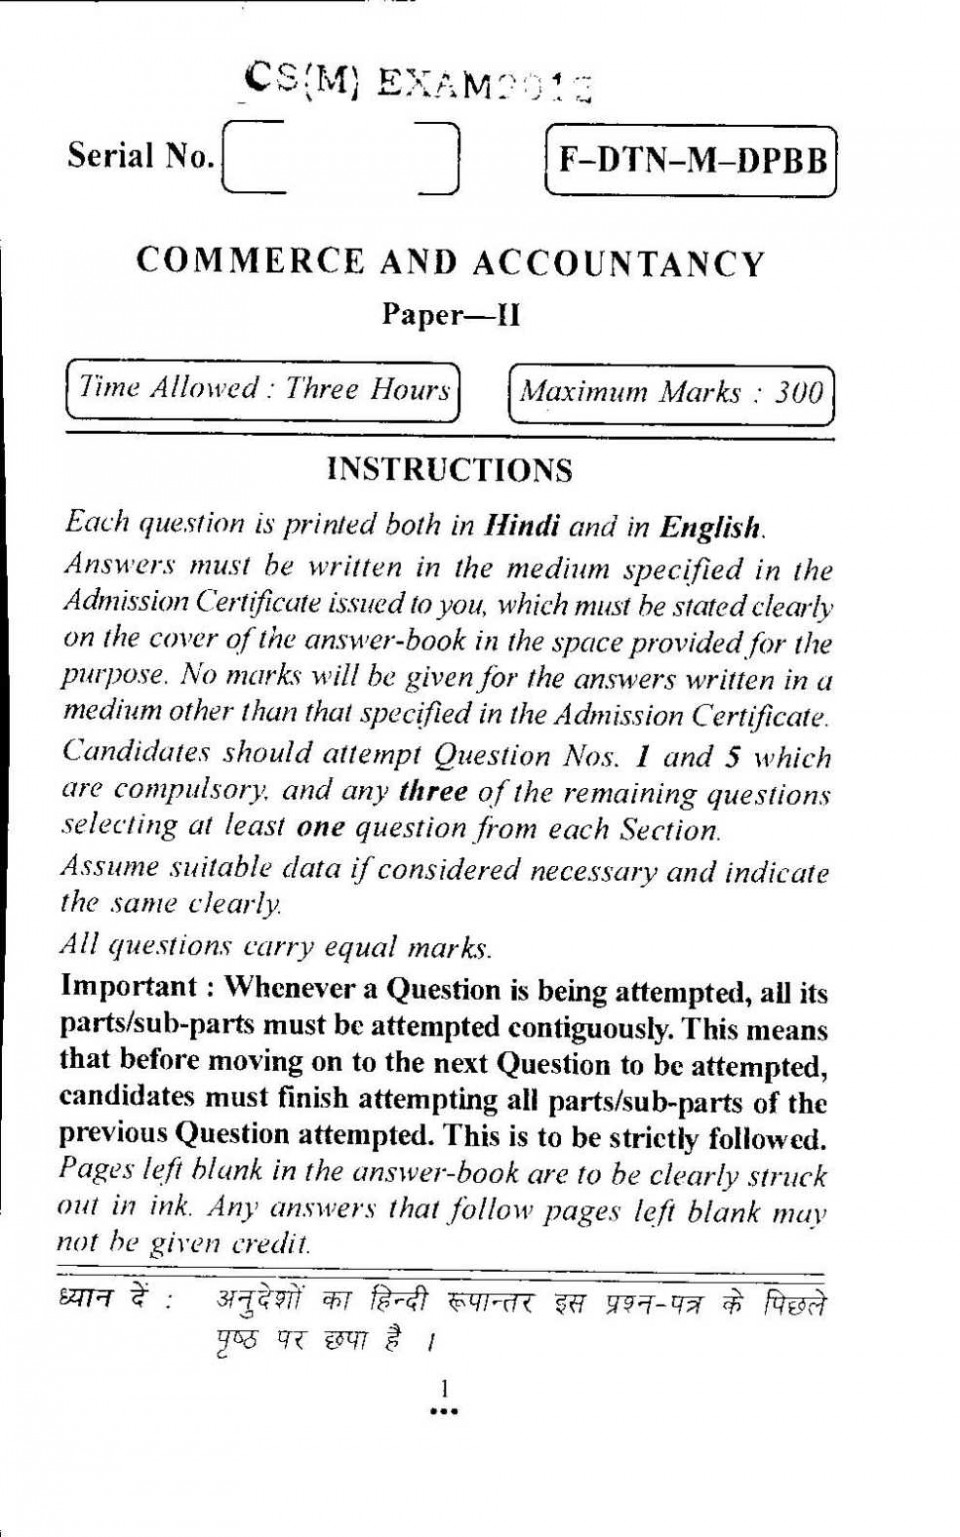 007 Racism Today Essay Civil Services Examination Commerce And Accountancy Paper Ii Previous Years Que Dreaded 960